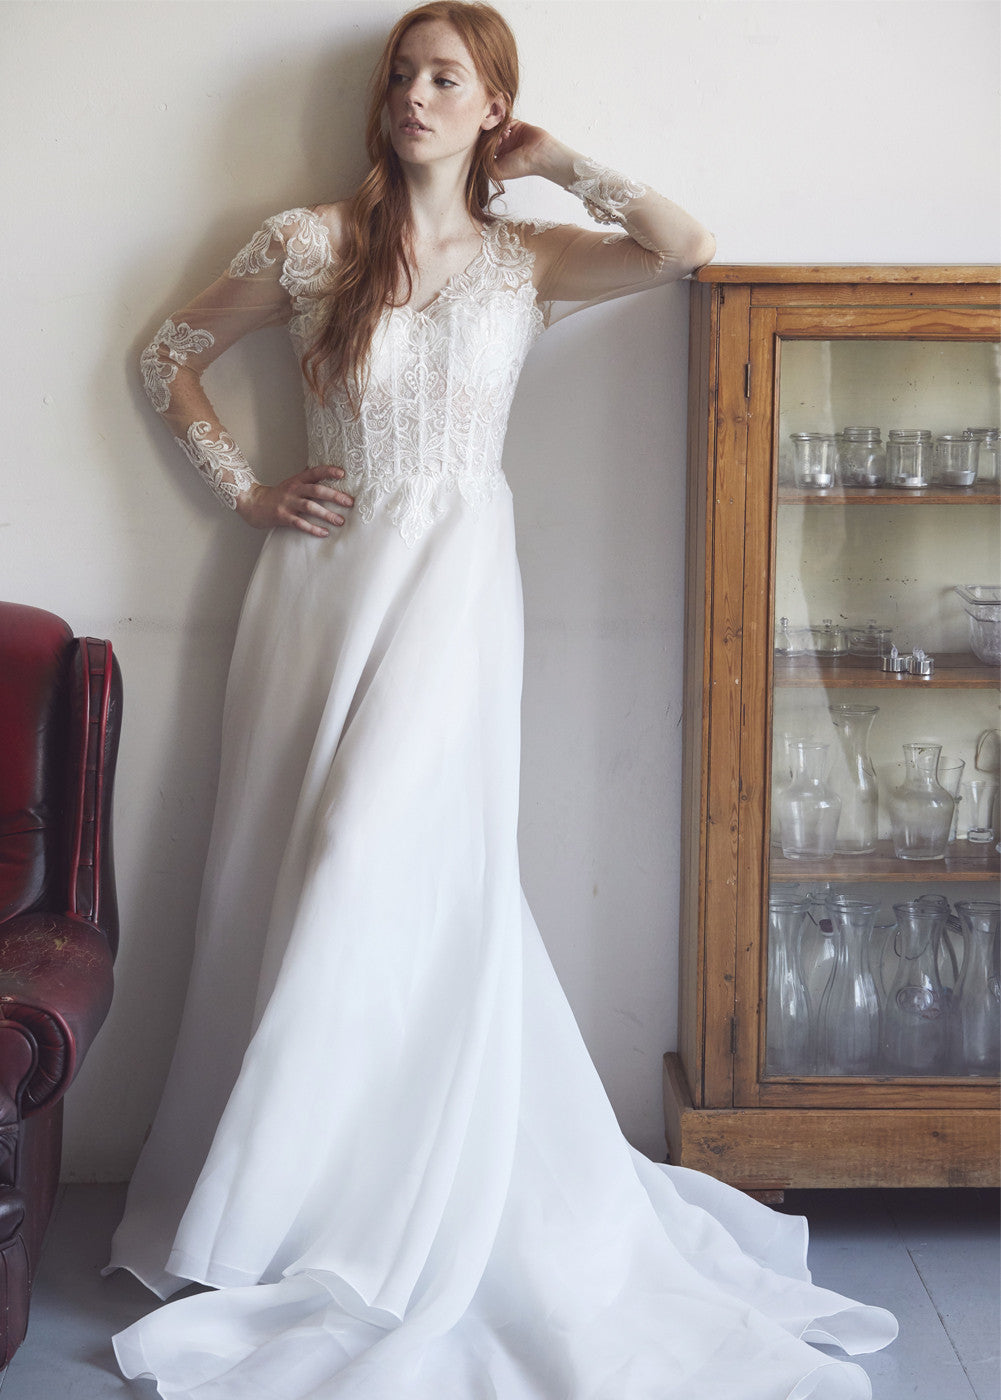 ... Long Sleeve Sheath Wedding Gown With A See Through Corset